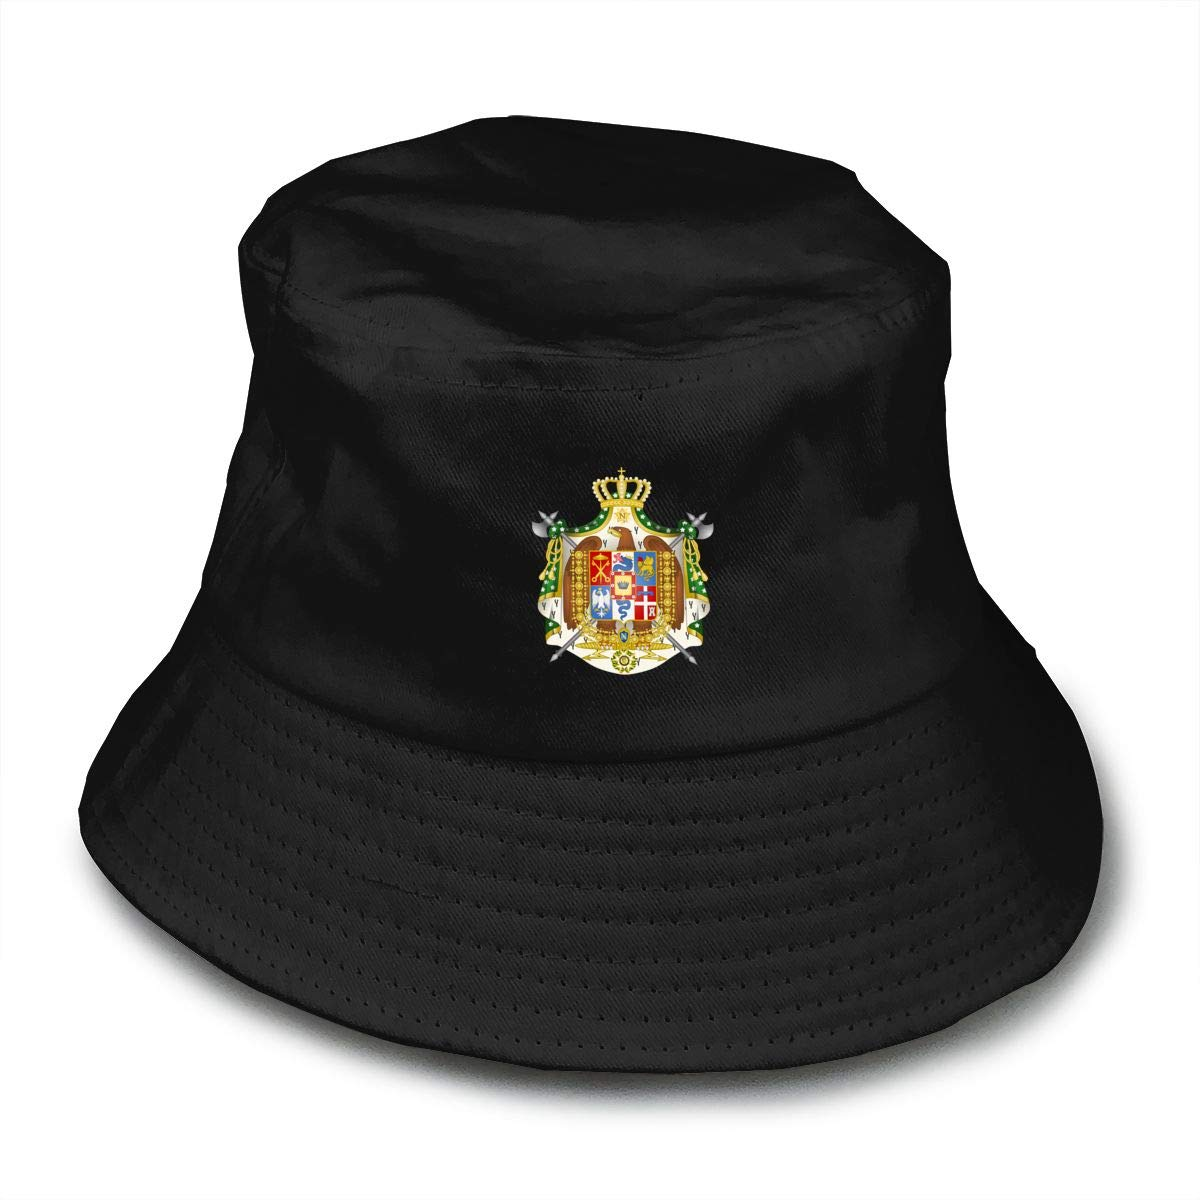 NDFGR Coat of Arms of Italy Unisex Cotton Packable Black Travel Bucket Hat Fishing Cap